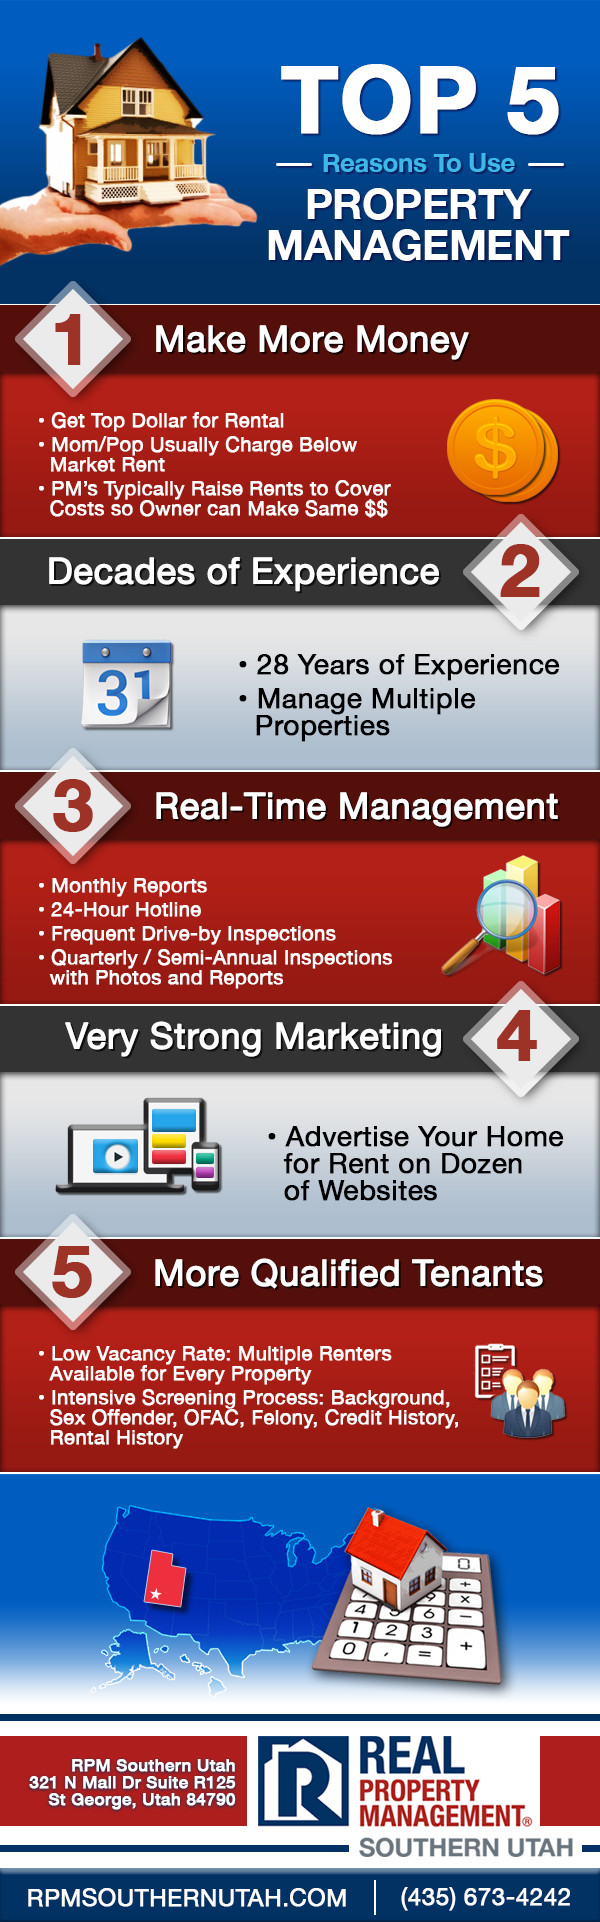 Top 5 Reasons to Use Property Management in Utah